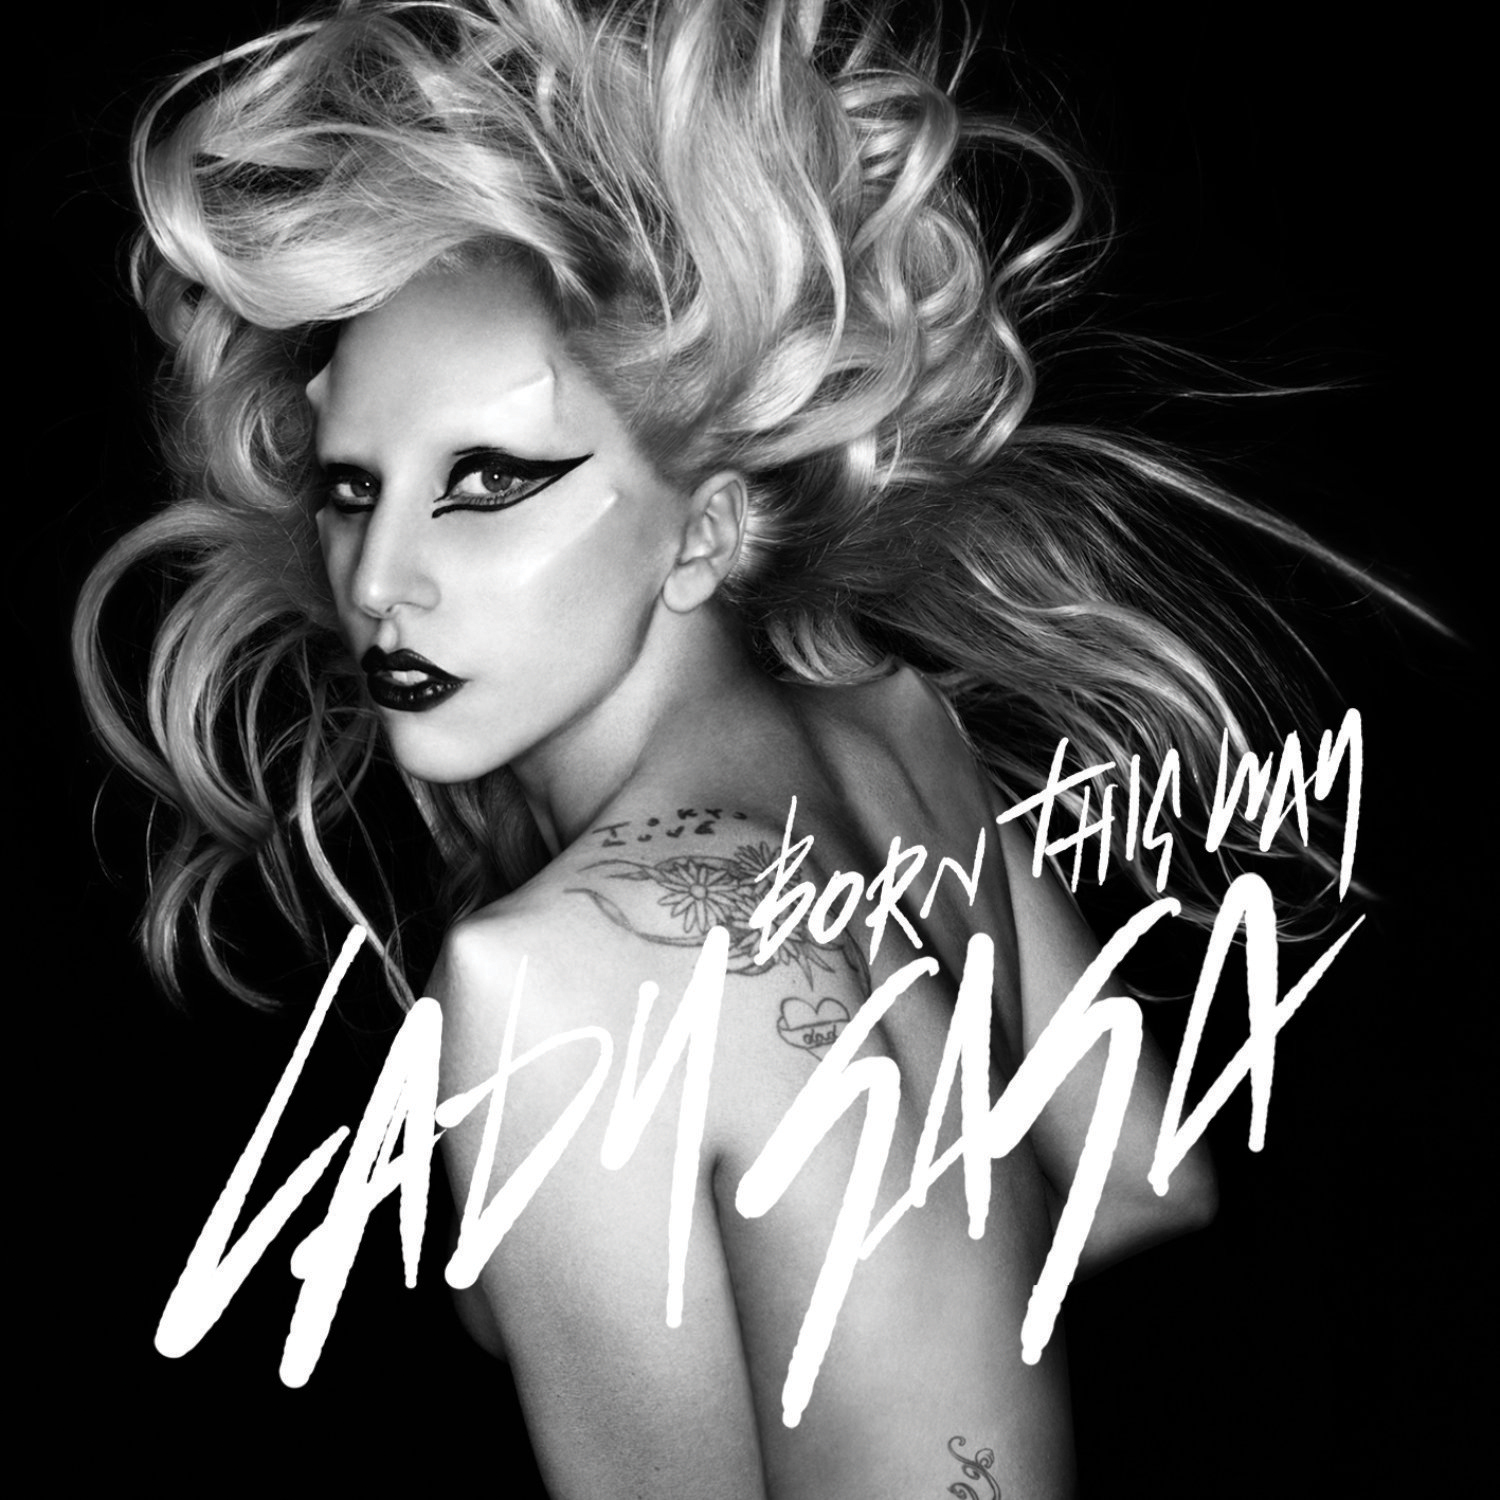 http://1.bp.blogspot.com/-fjVq0im0f5g/TWKVA9wGyMI/AAAAAAAAABY/5Zp-rriNldY/s1600/Lady-GaGa-%25E2%2580%2593-Born-This-Way-Official-Single-Cover.jpg